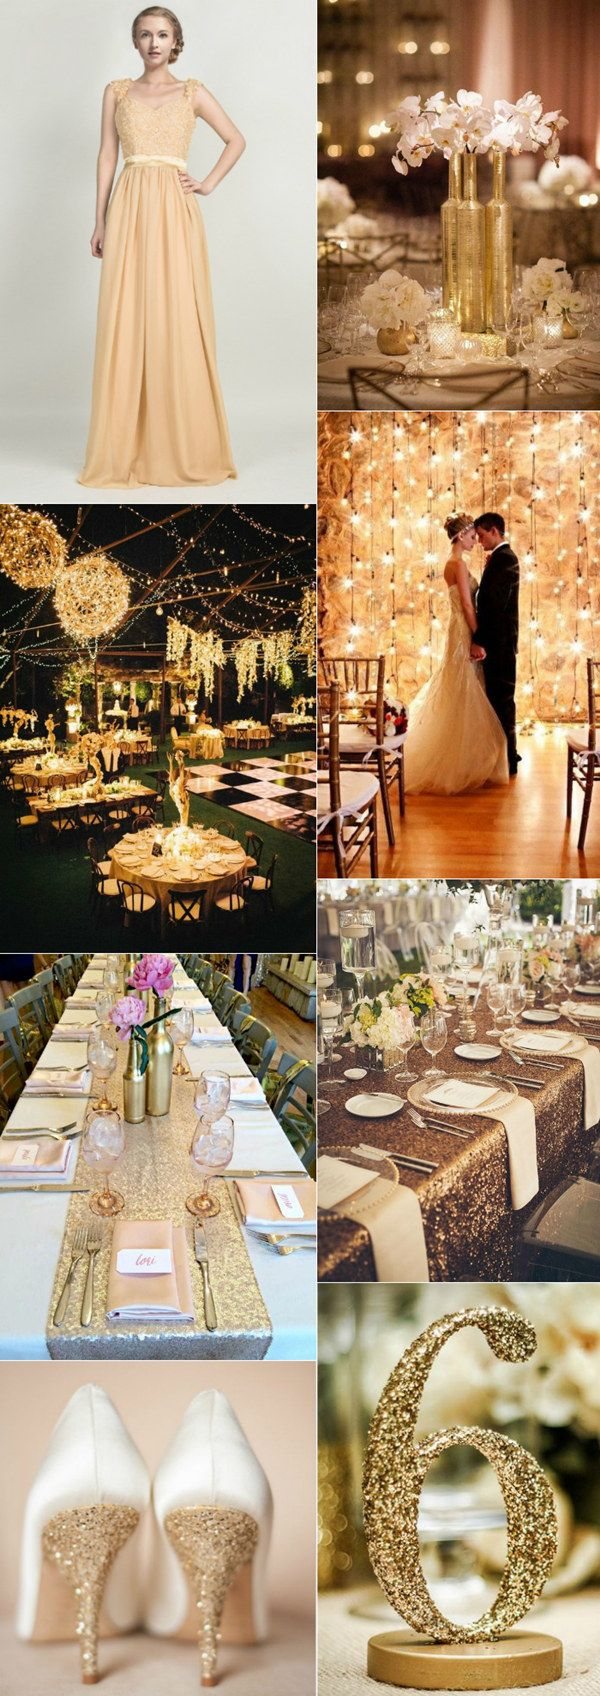 1920s wedding decoration ideas   Wedding Color Trend MostLoved Metallic Color Palettes